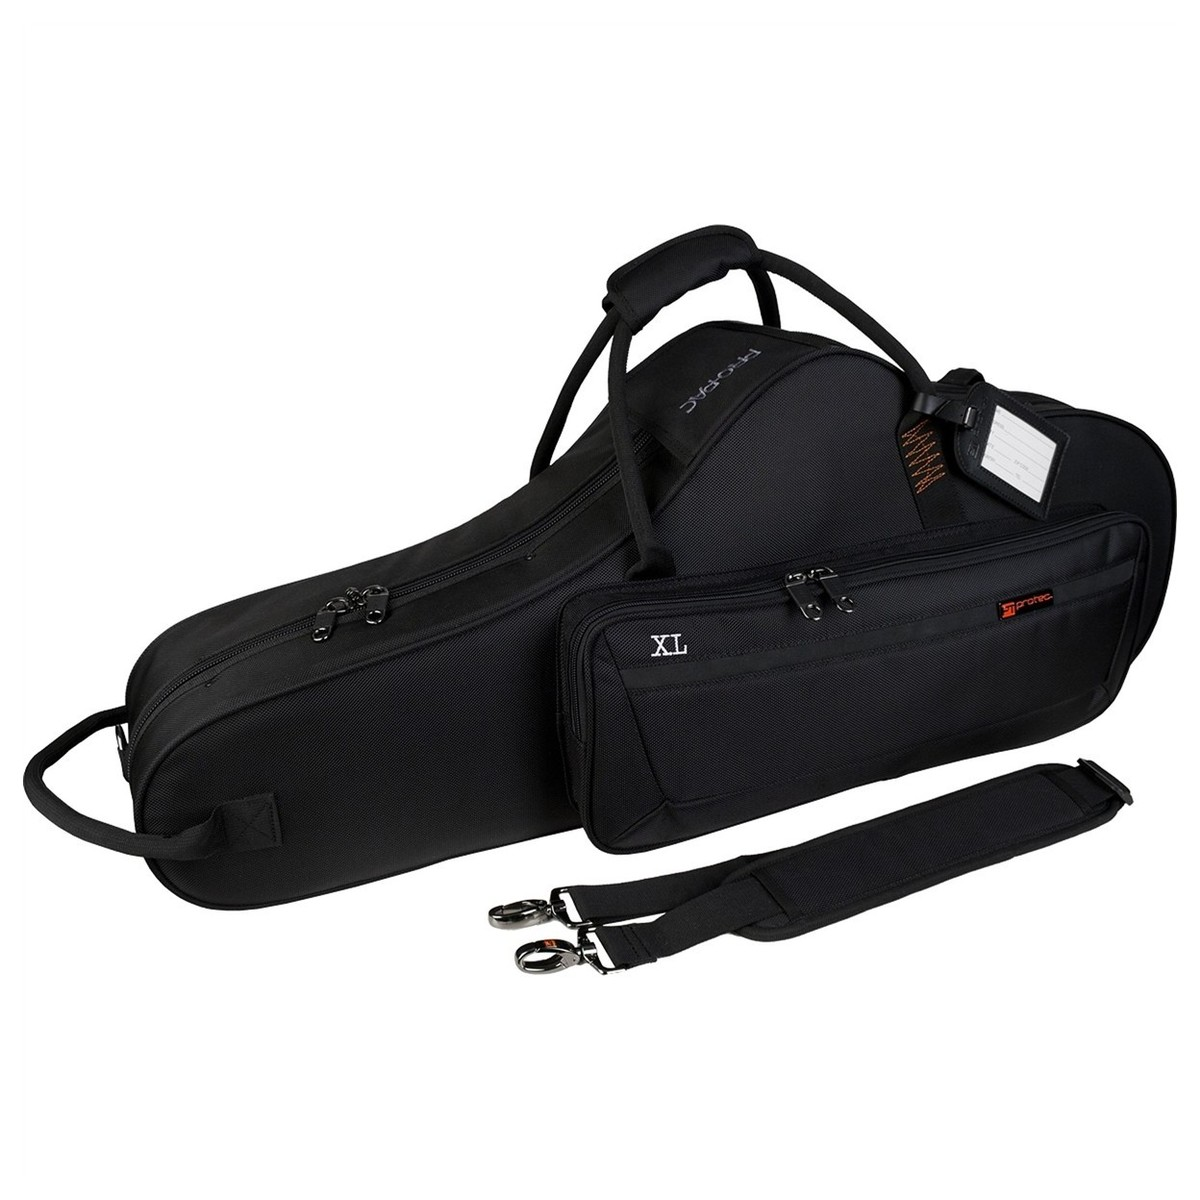 protec pb305ctxl pro pac contoured tenor sax case xl bell at gear4music. Black Bedroom Furniture Sets. Home Design Ideas